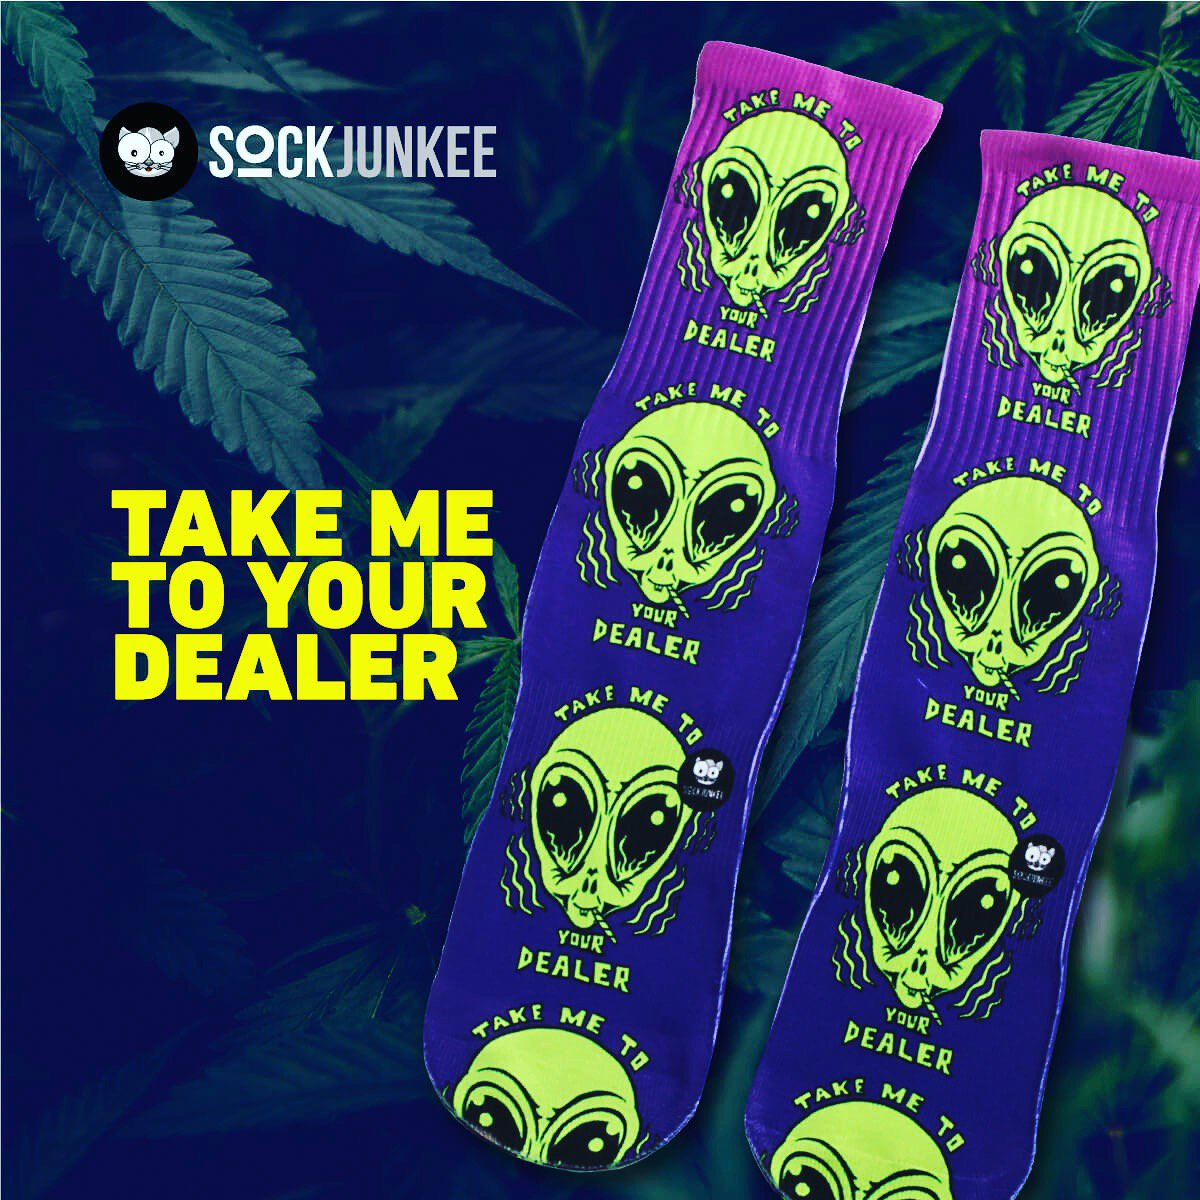 Aliens smoking that loud 👽Get abducted 🌿 -> Click link in bio to cop a pair . . . #sockgameonpoint #aliensarereal #alienlife #sockswag #sockjunkee #sockjunkie